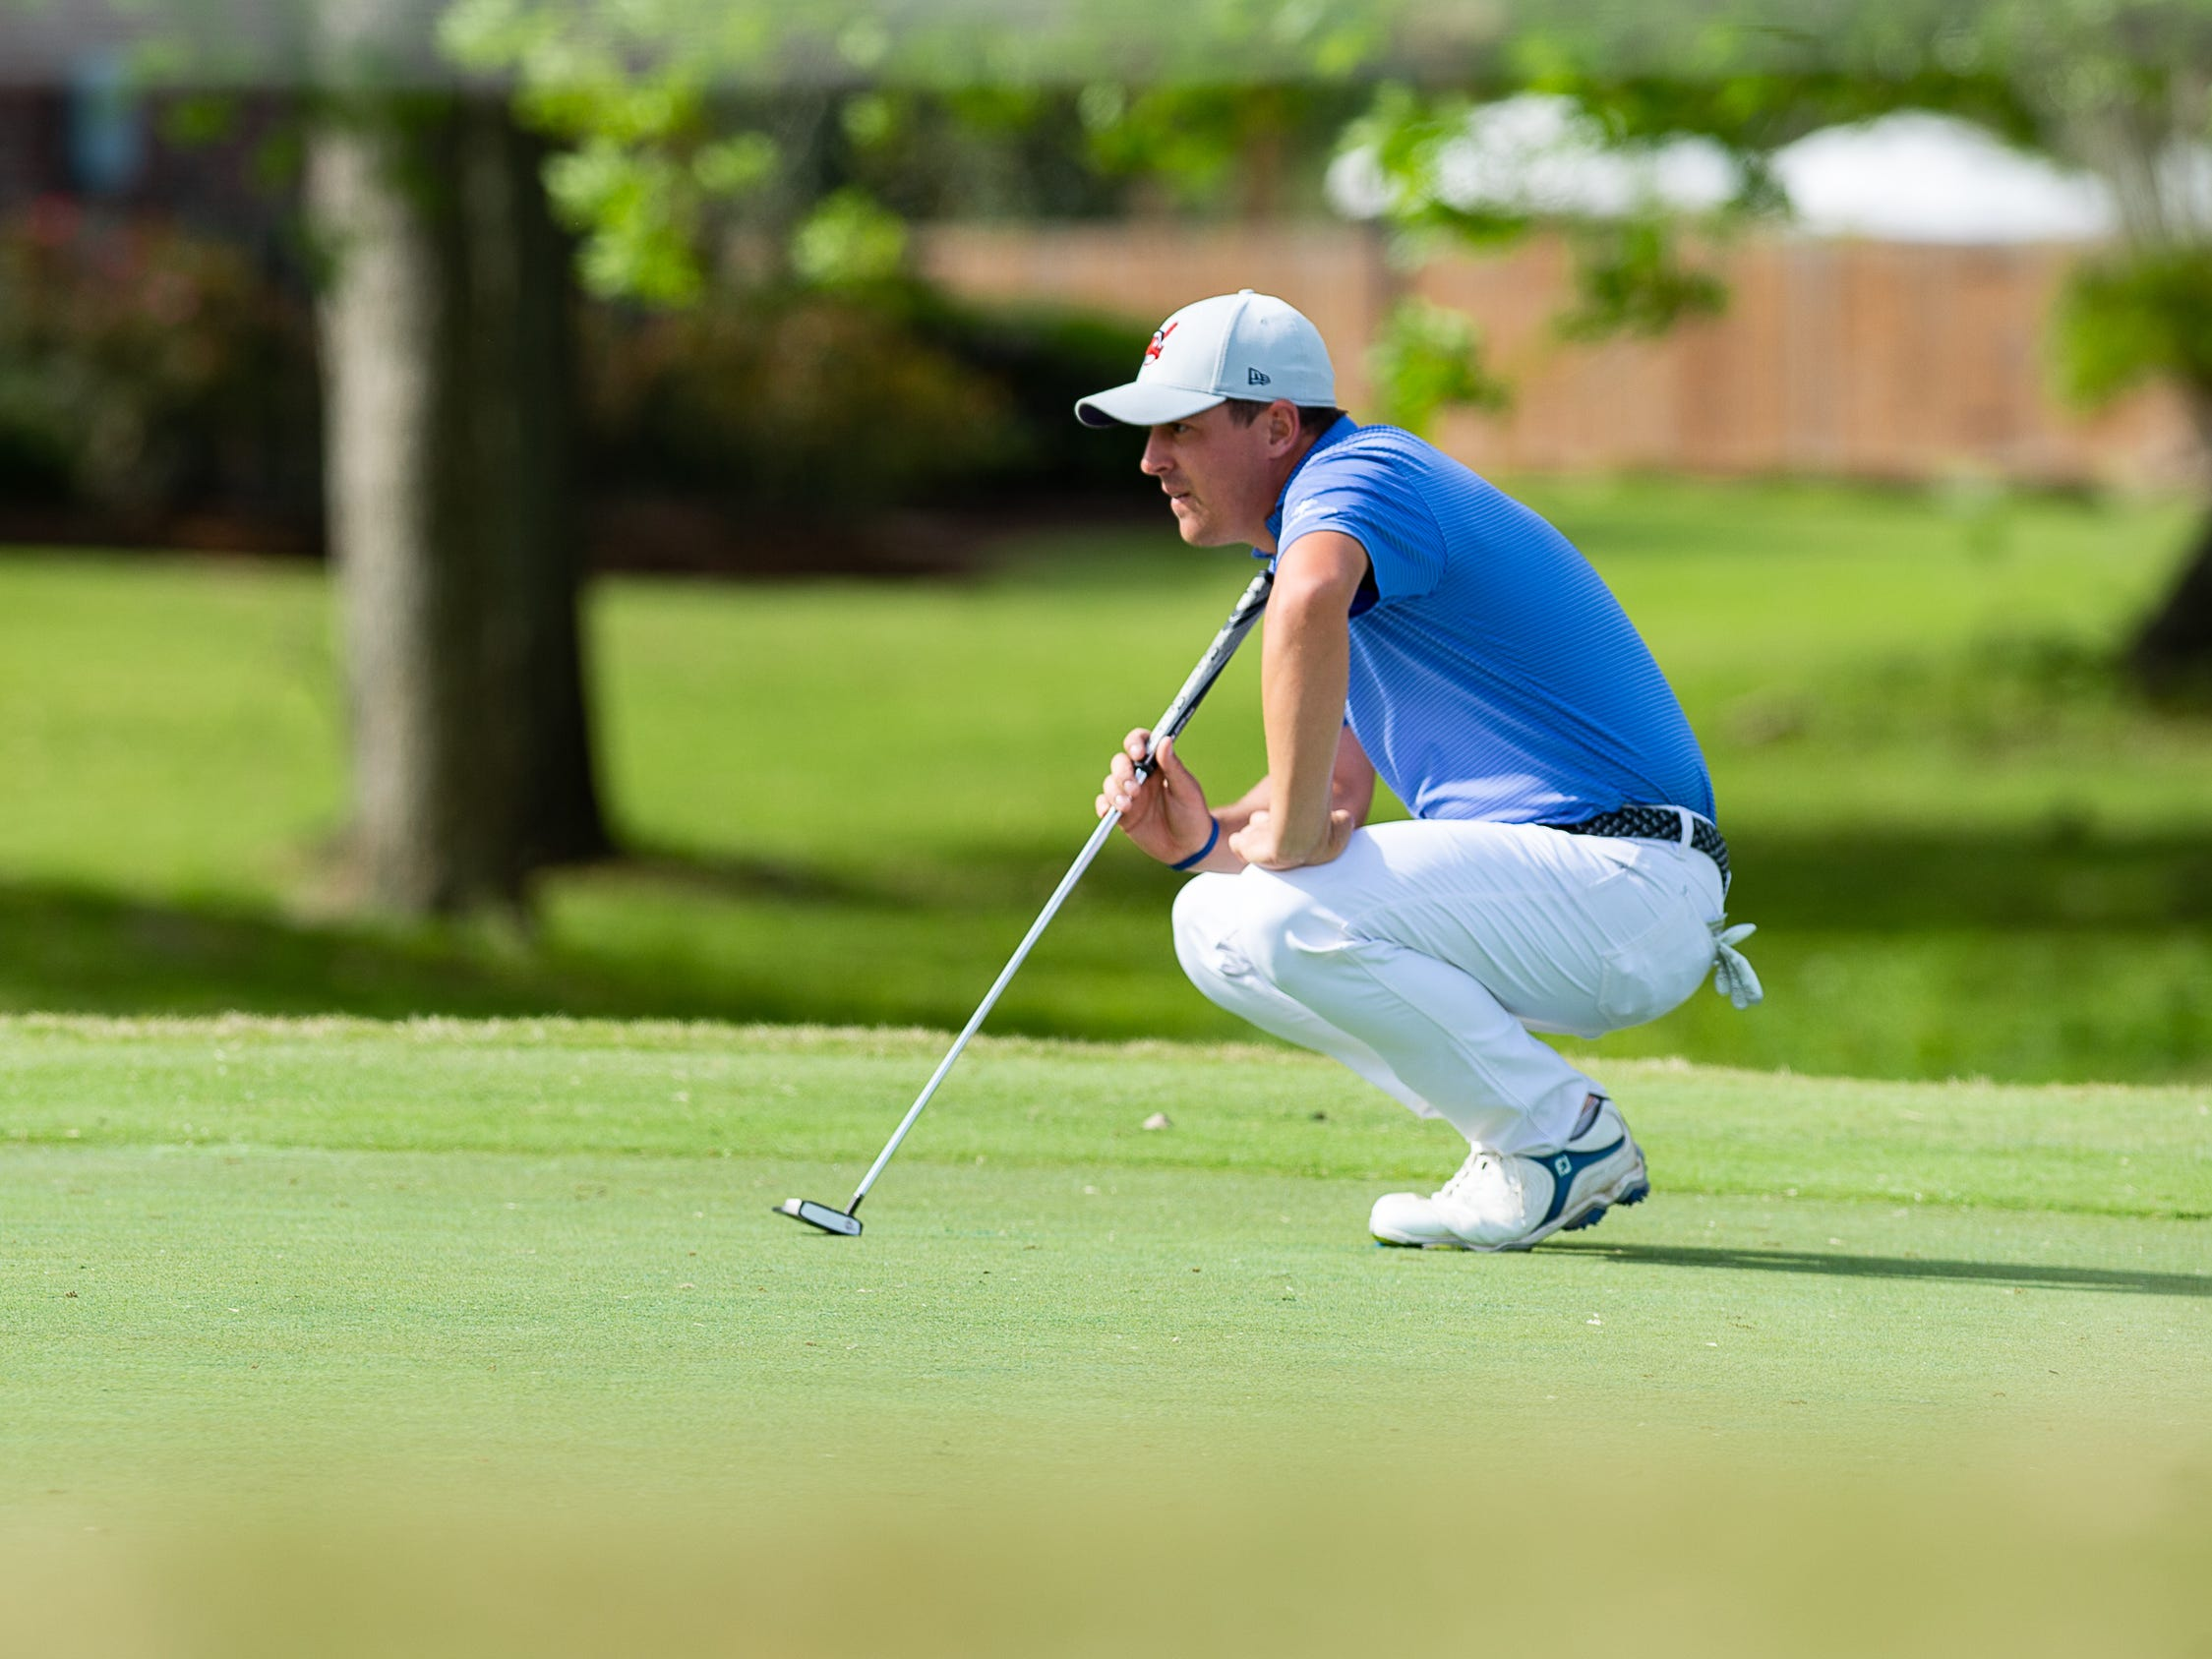 Justin Lower lines up a putt during the third round of The Web.com Tour in Lafayette for the 2019 Chitimacha Louisiana Open at Le Triomphe. Saturday, March 23, 2019.